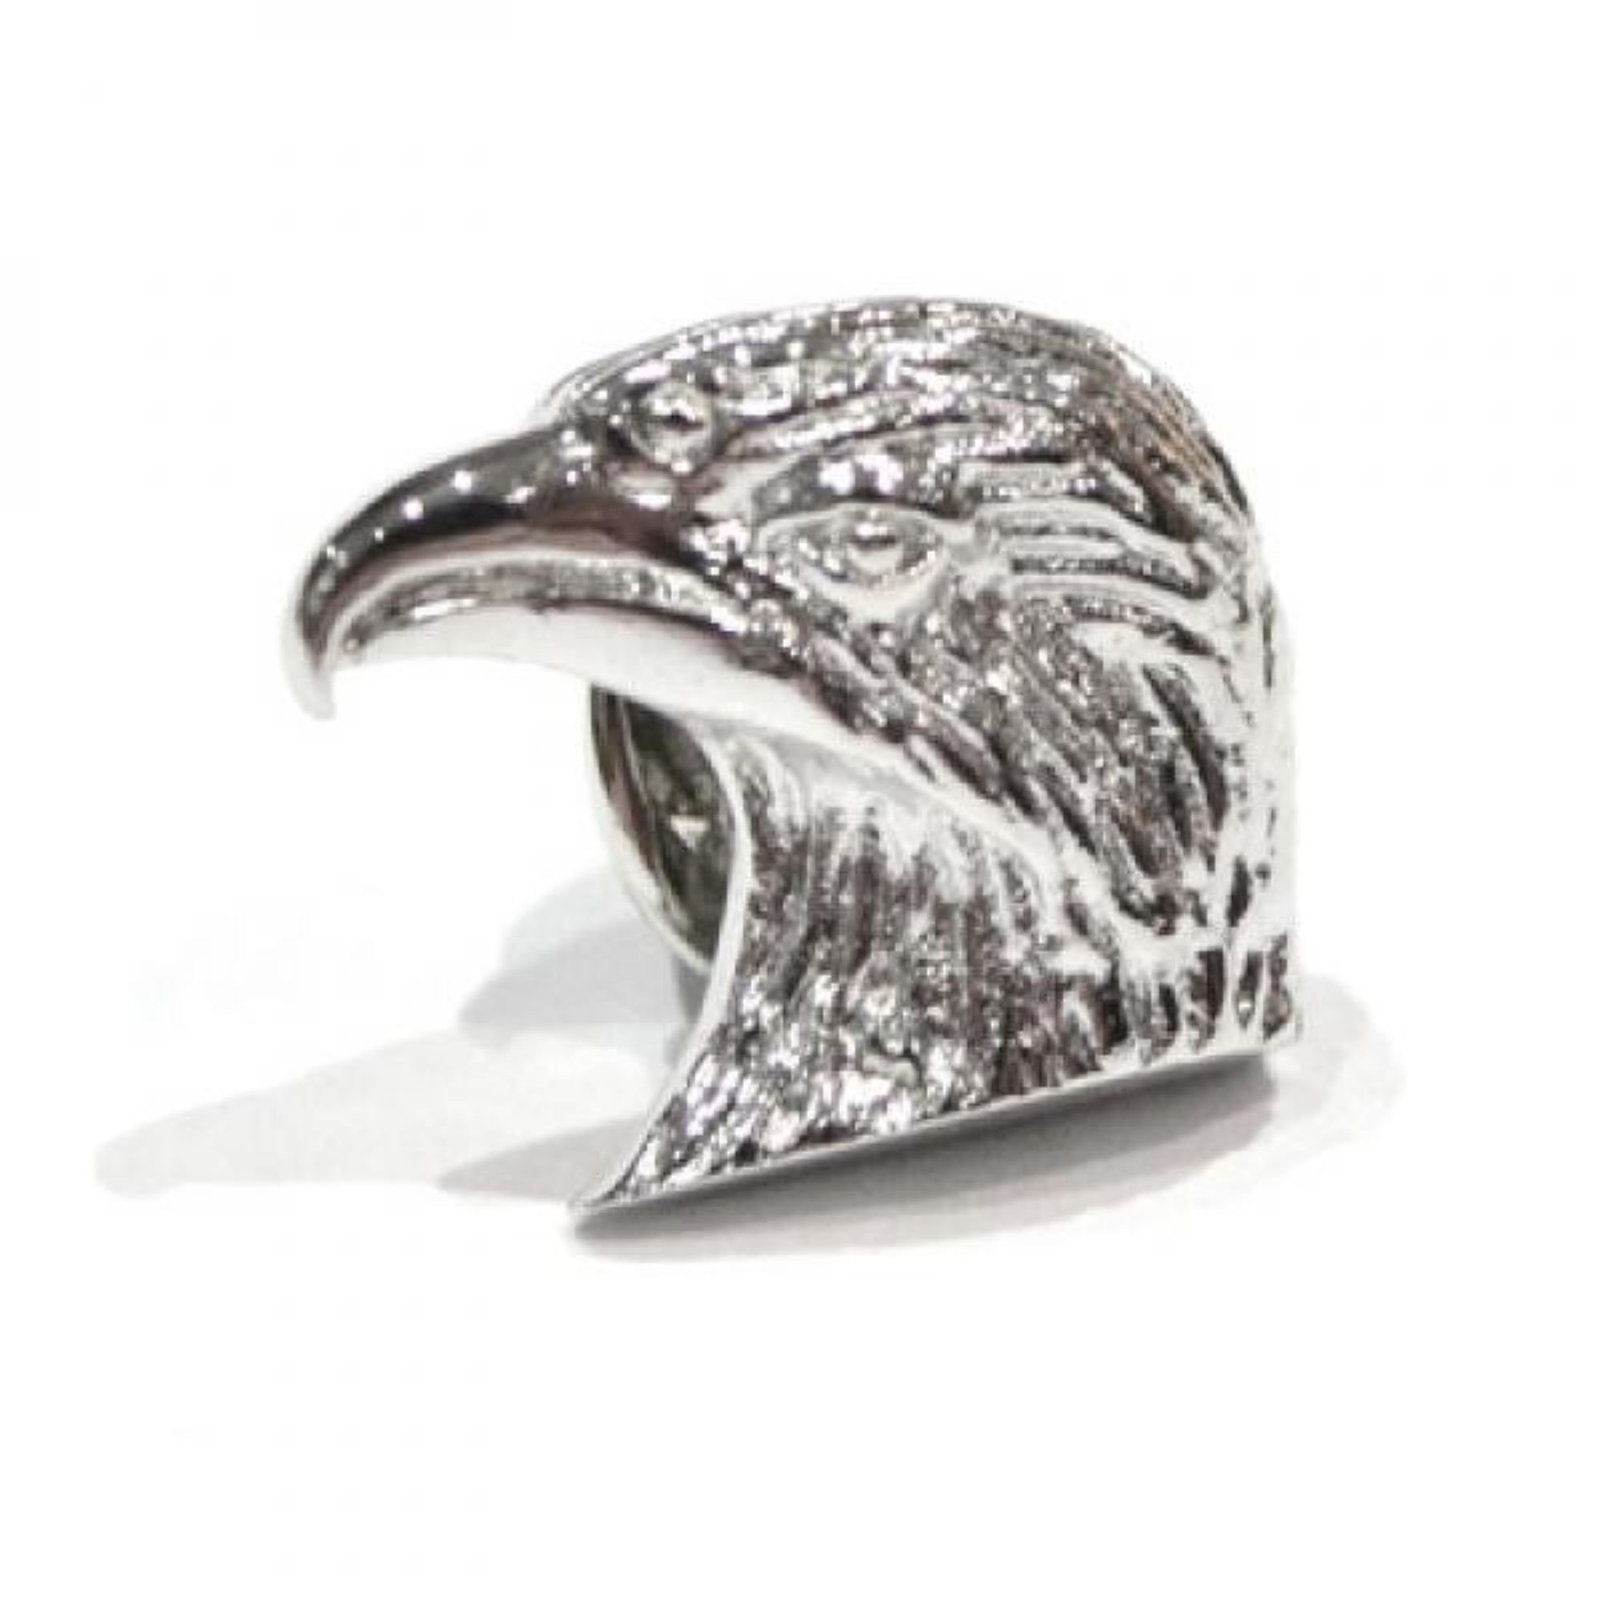 Eagles Head Bird Design Lapel Pin Badge Lapel /tie Pin Badge  with clip for rear